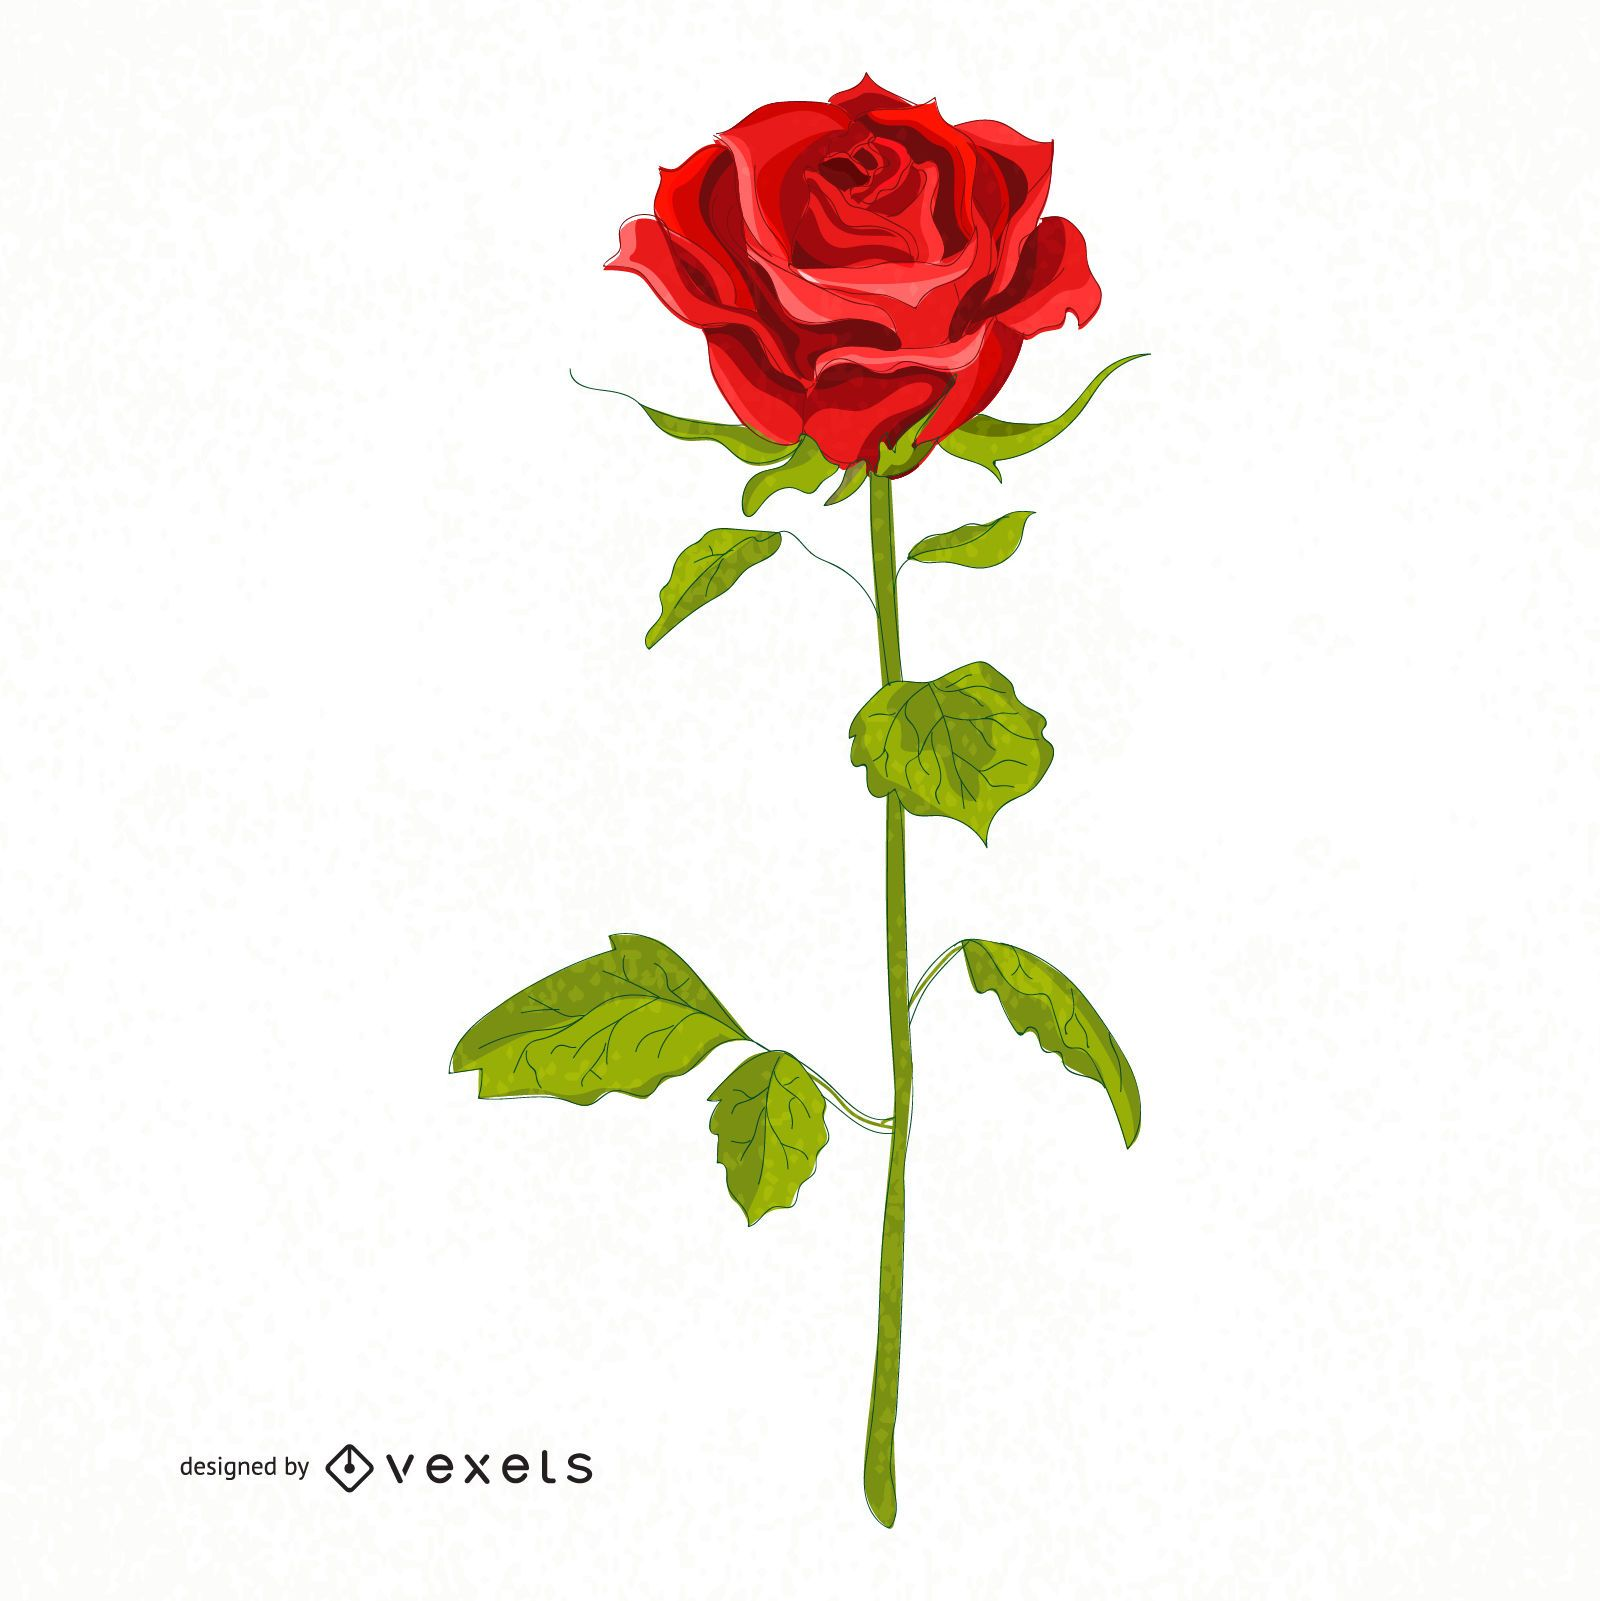 Red rose illustration - Vector download